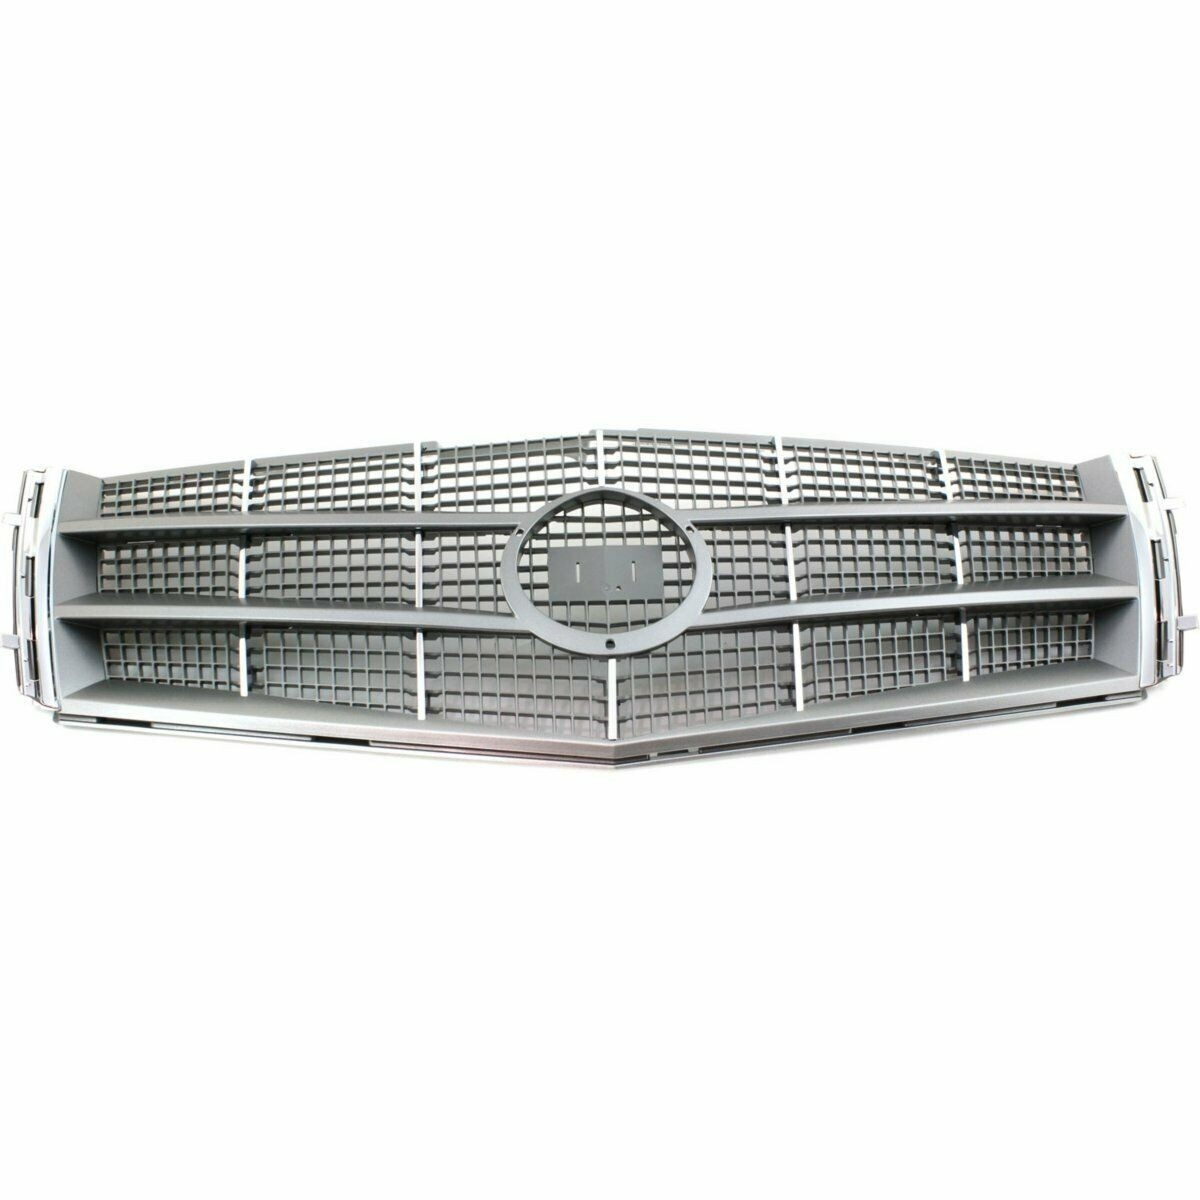 New Grille Front For Cadillac CTS 2009-2012 GM1200616